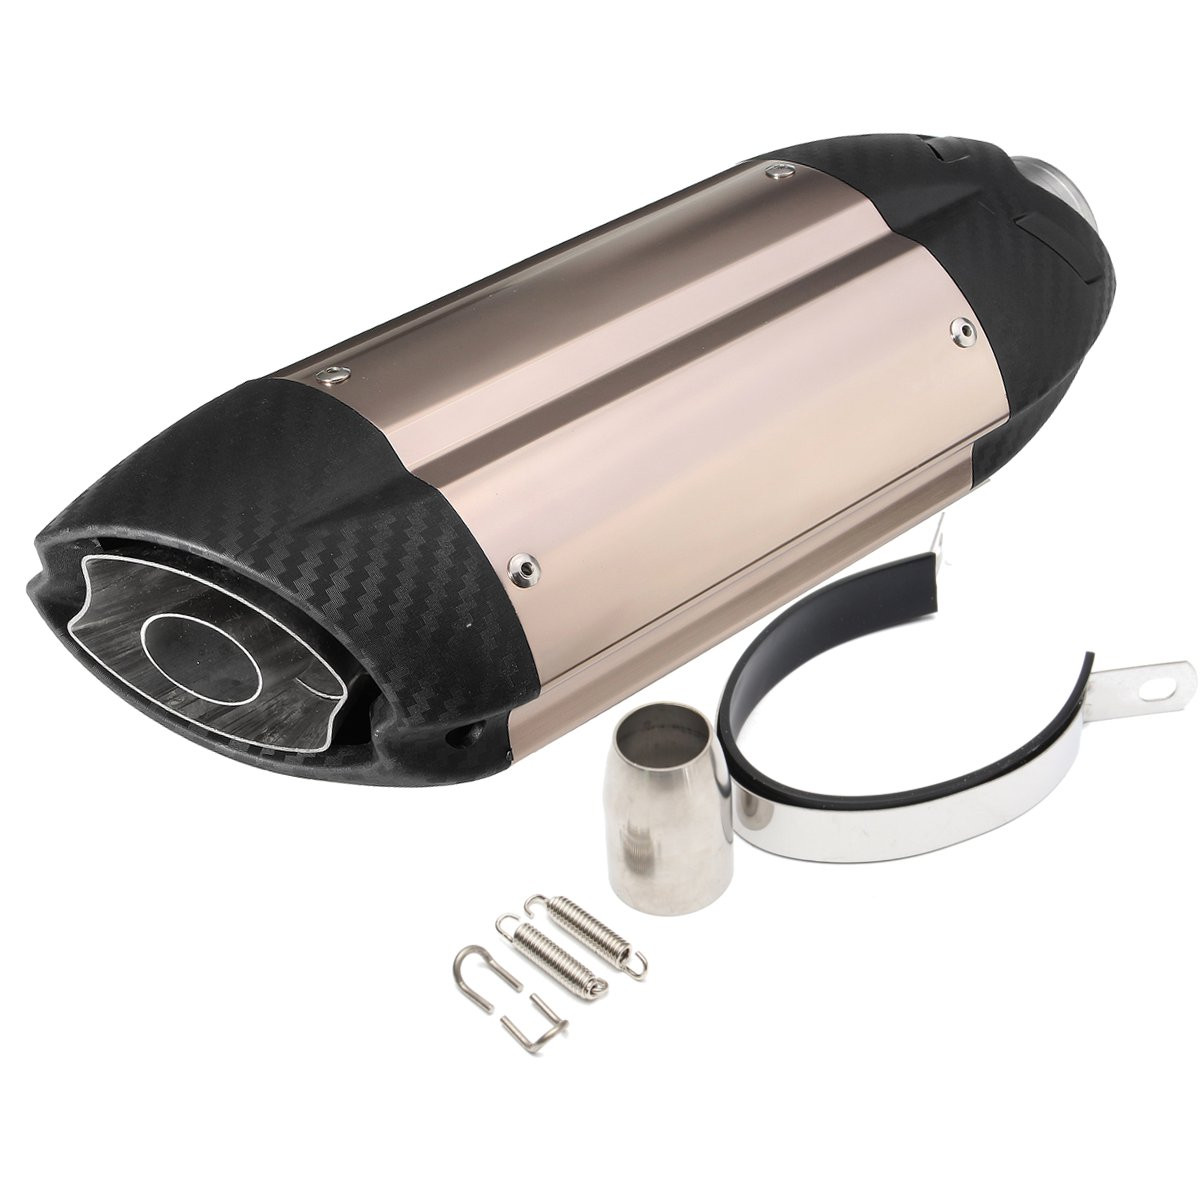 38-51mm Universal ATV Dirt BikeStreet Bike Scooter Motorcycle Carbonfiber Exhaust Muffler Pipe with Silencer length 360mm id 51mm carbon fiber motorcycle exhaust muffler pipe with silencer case for cb600 mt07 yzf duke fz6 atv dirt bike